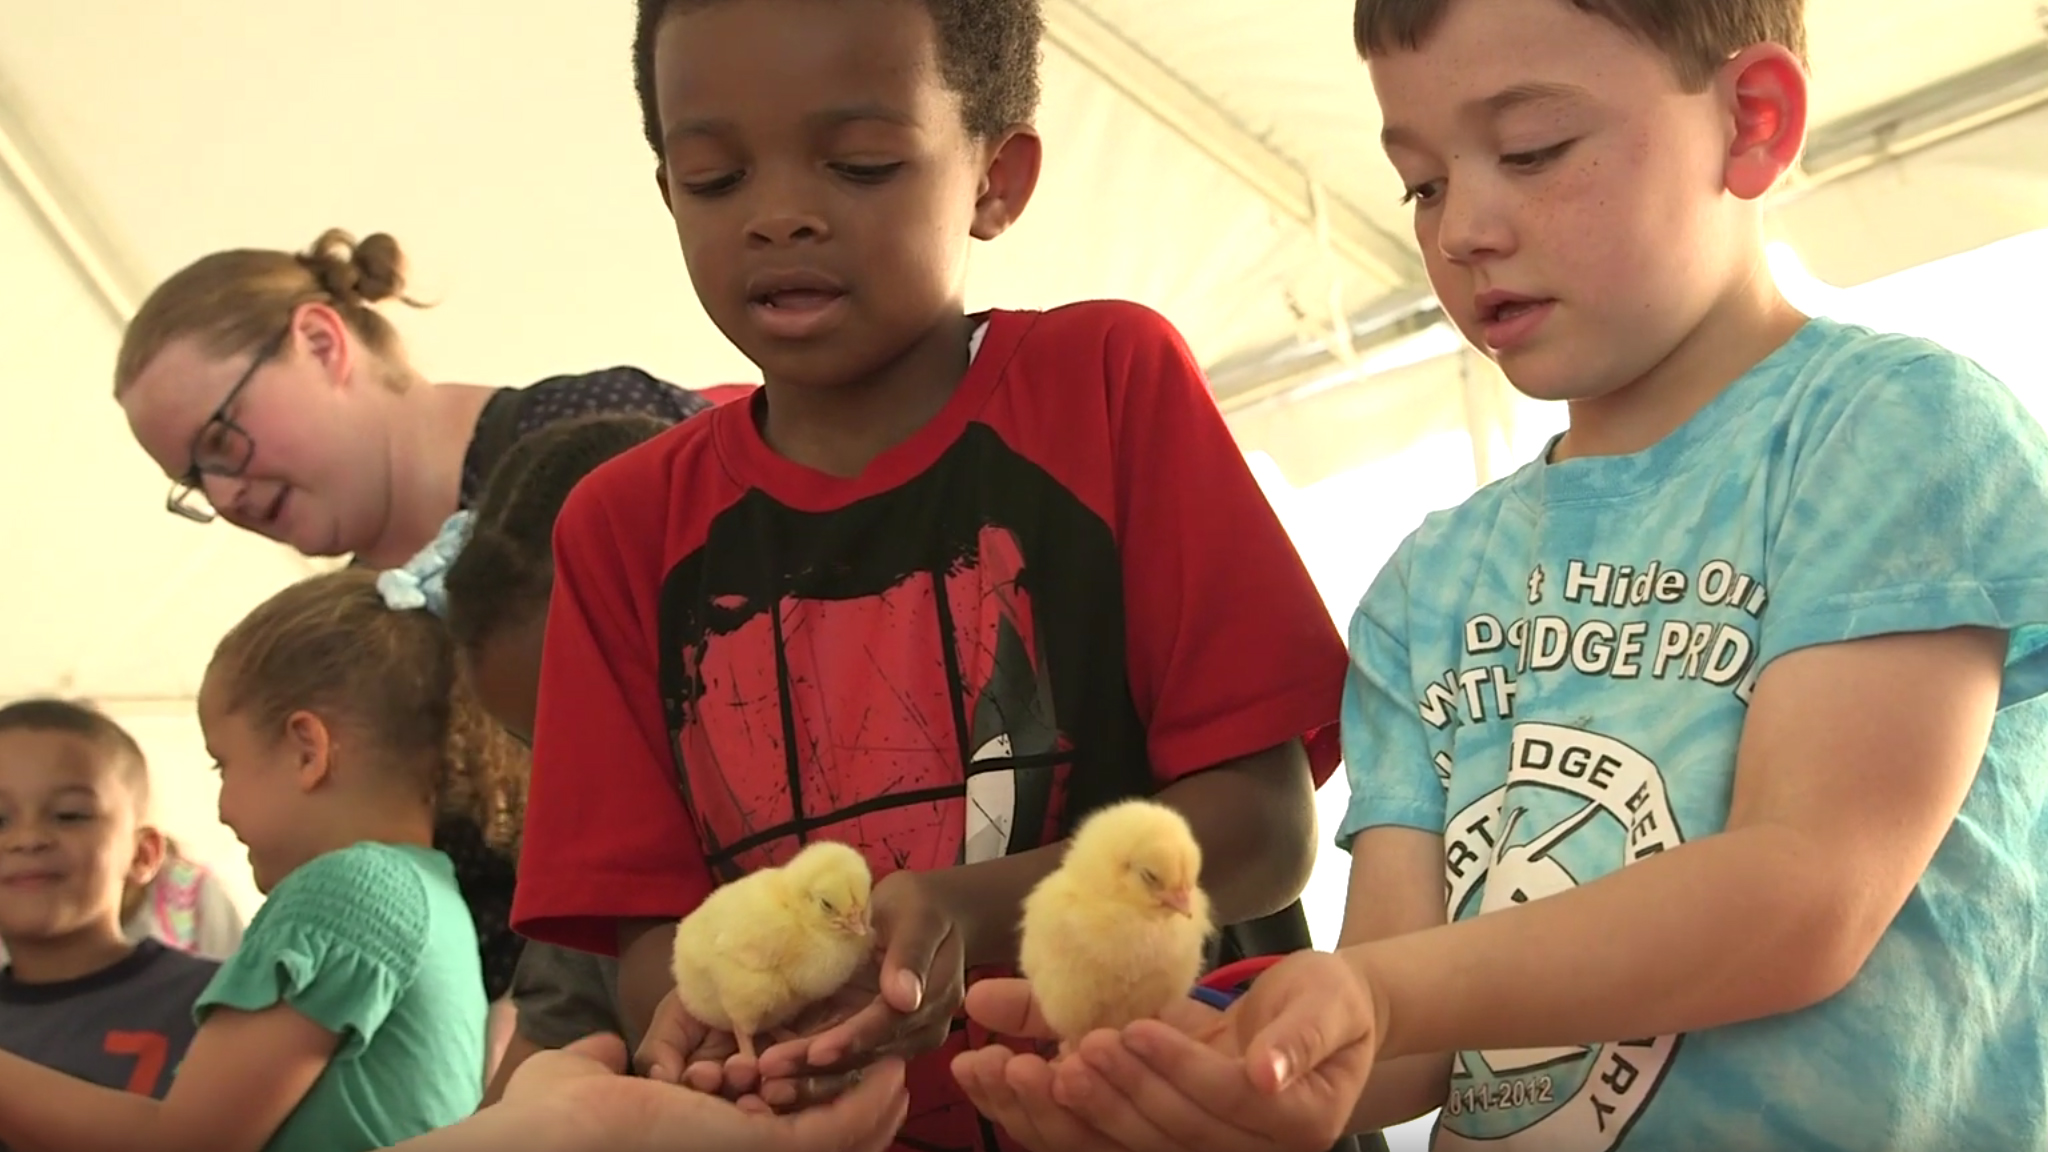 Two young boys are holding yellow baby chicks at a farm education event by NC State University.